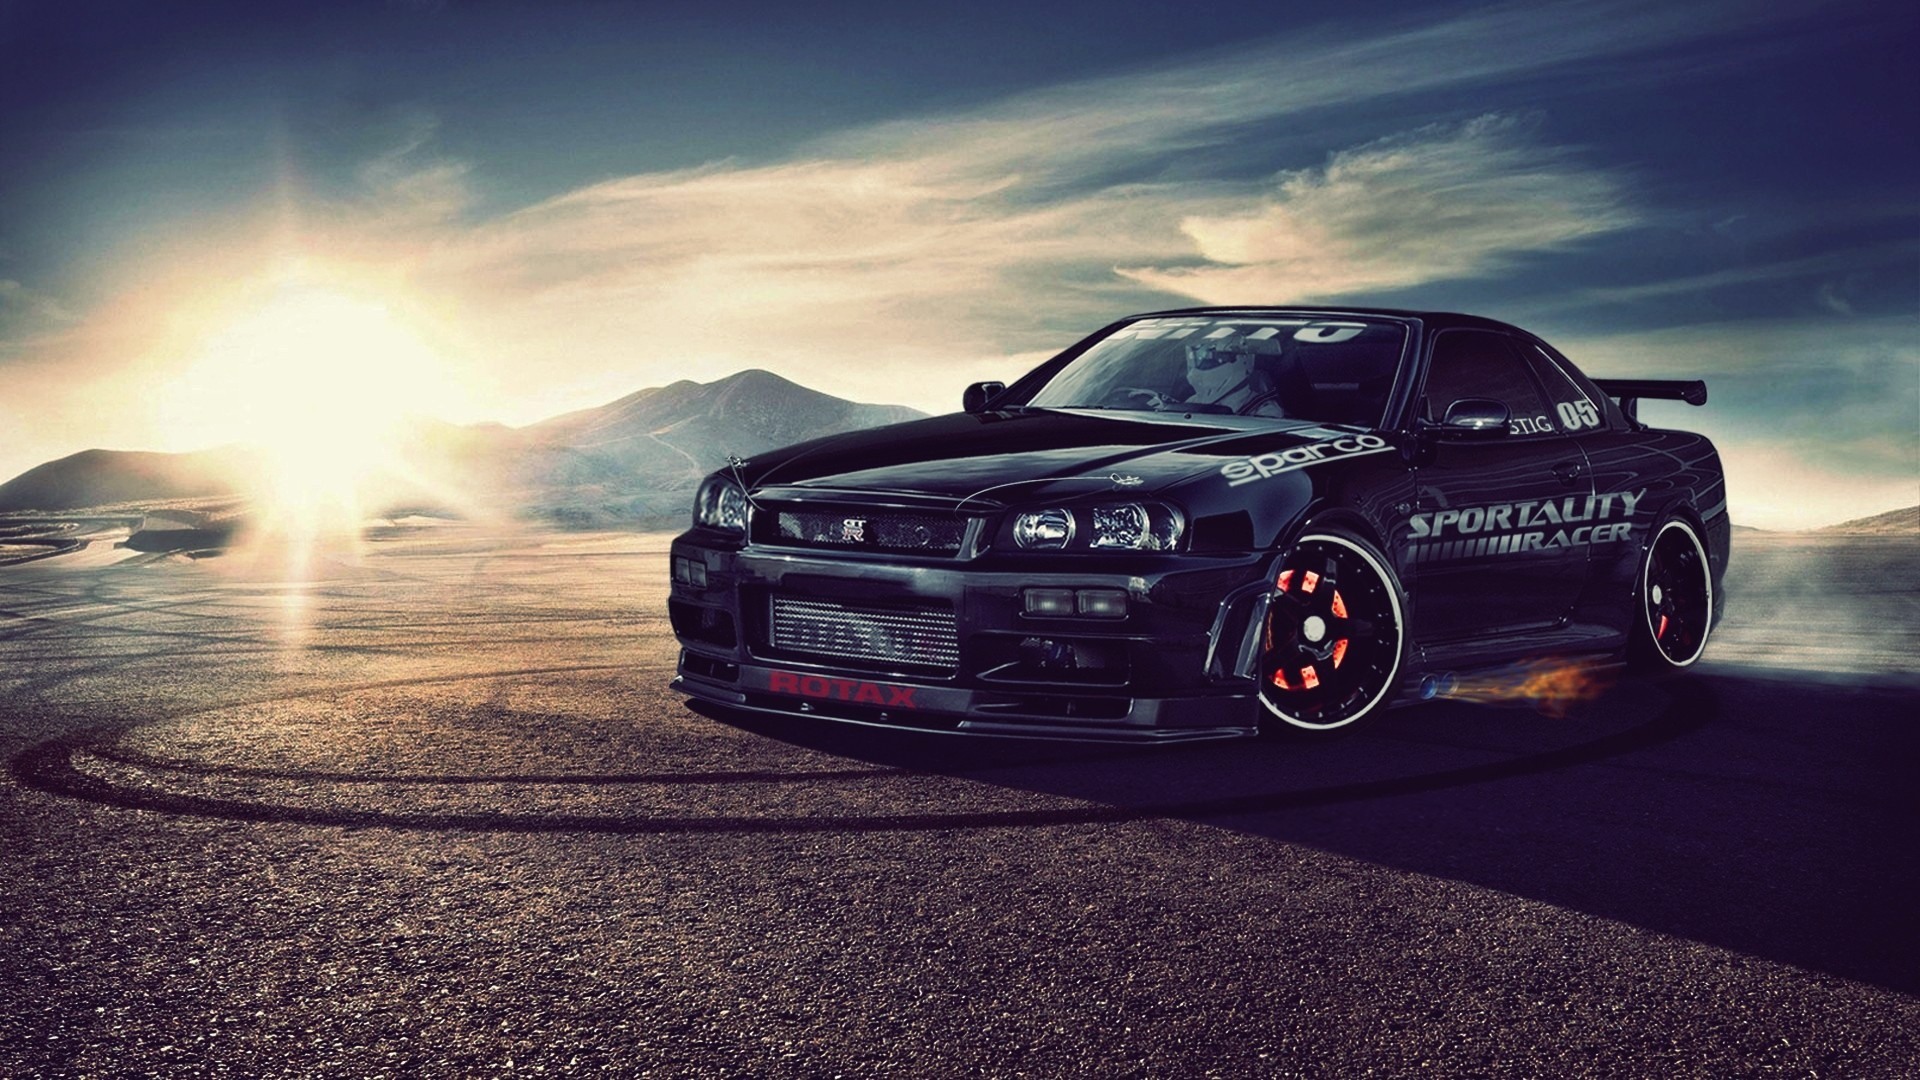 Nissan Skyline GTR R34 Wallpapers 77 Wallpapers  HD Wallpapers